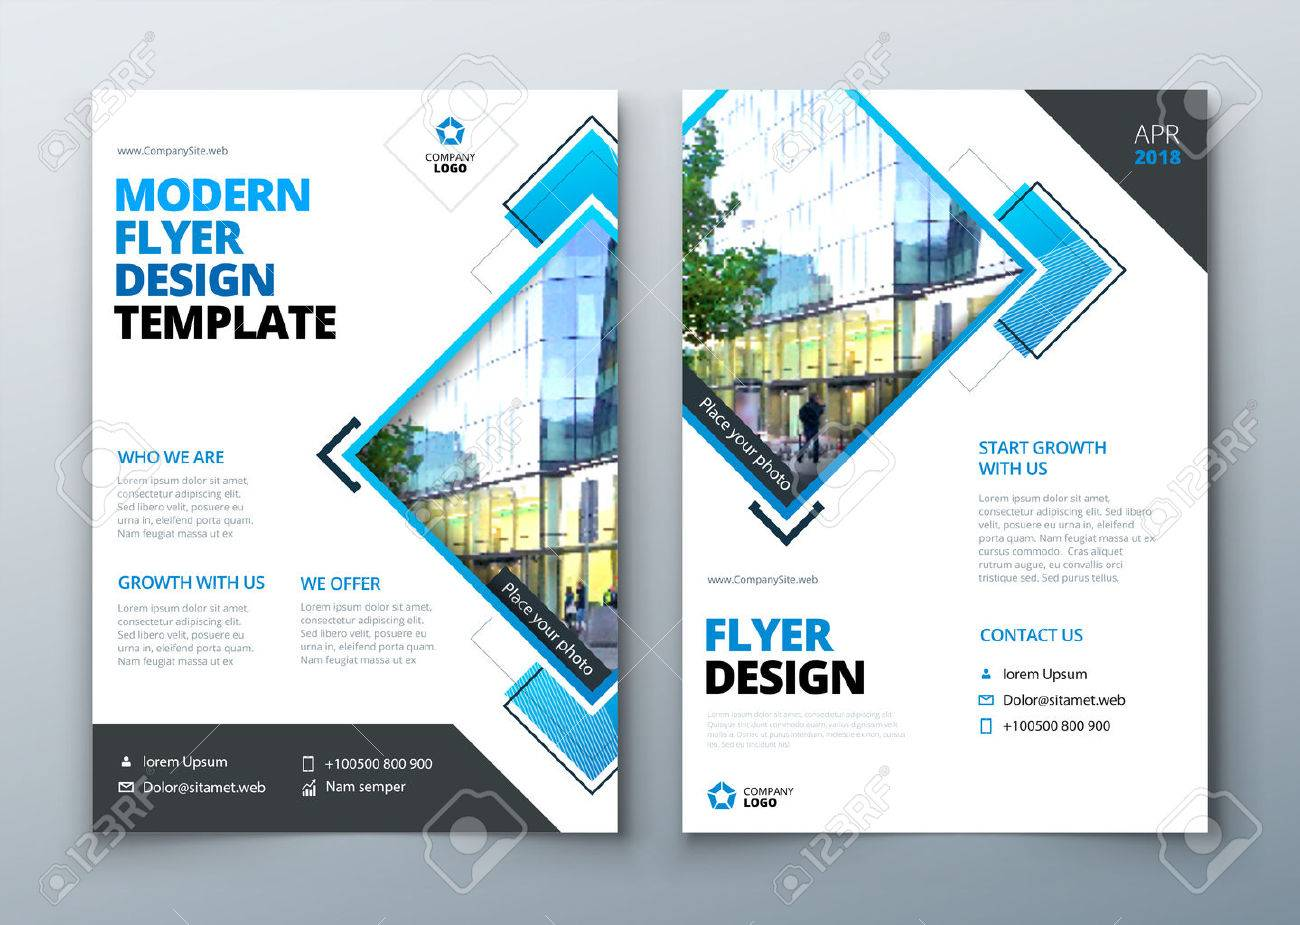 flyer design corporate business report cover brochure or flyer